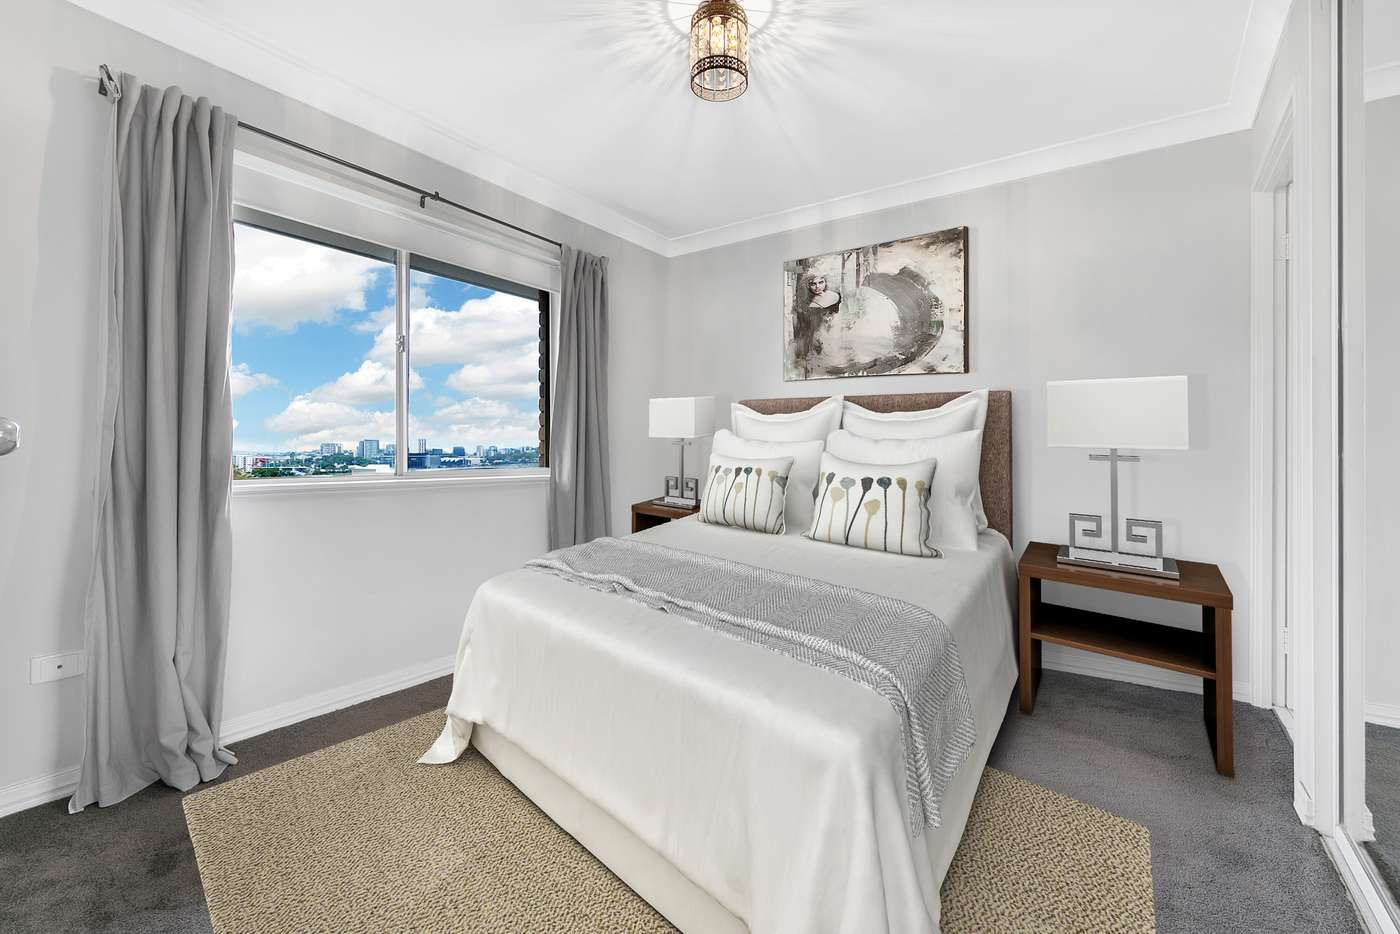 Sixth view of Homely unit listing, 6/23 Little Street, Albion QLD 4010